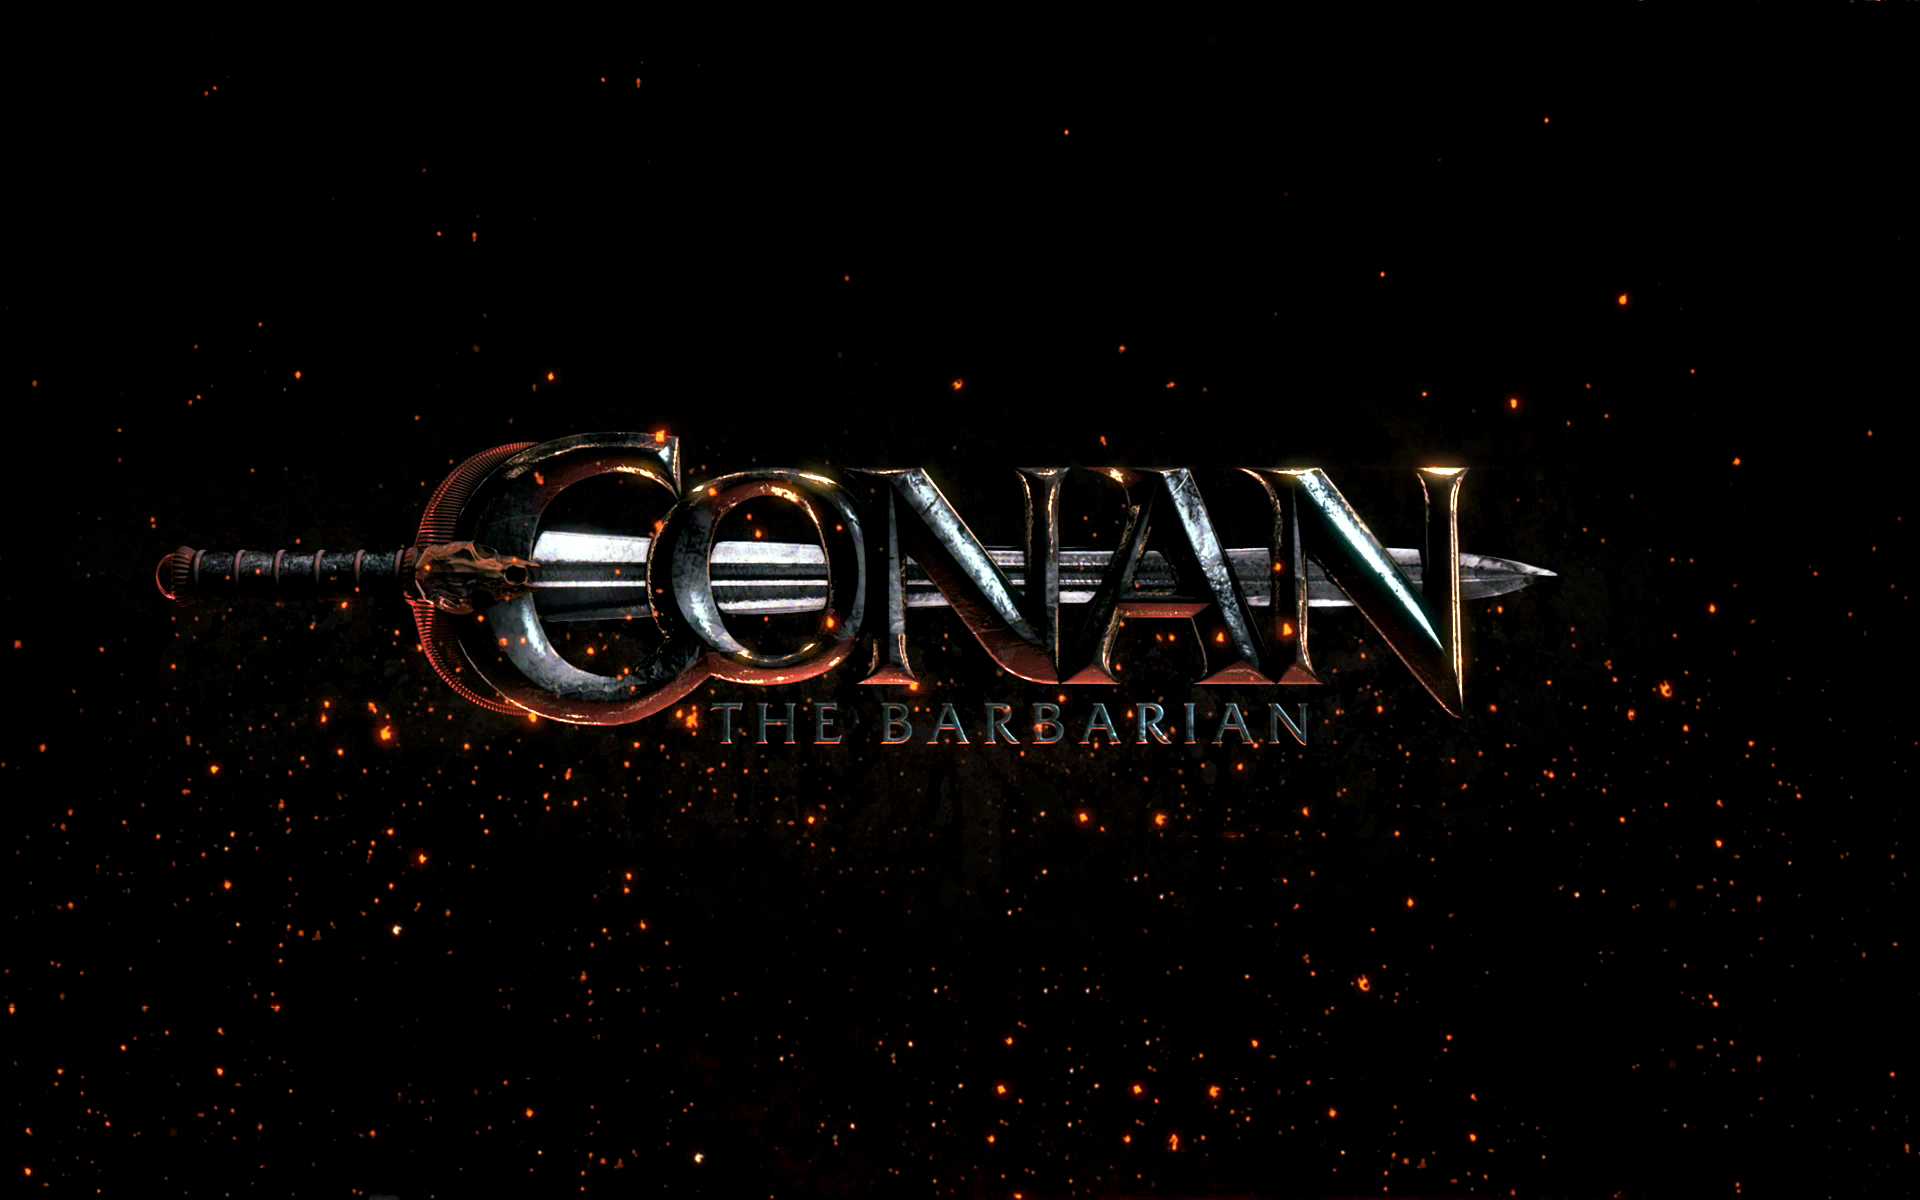 Conan-The-Barbarian-Wallpapers-1920x1200